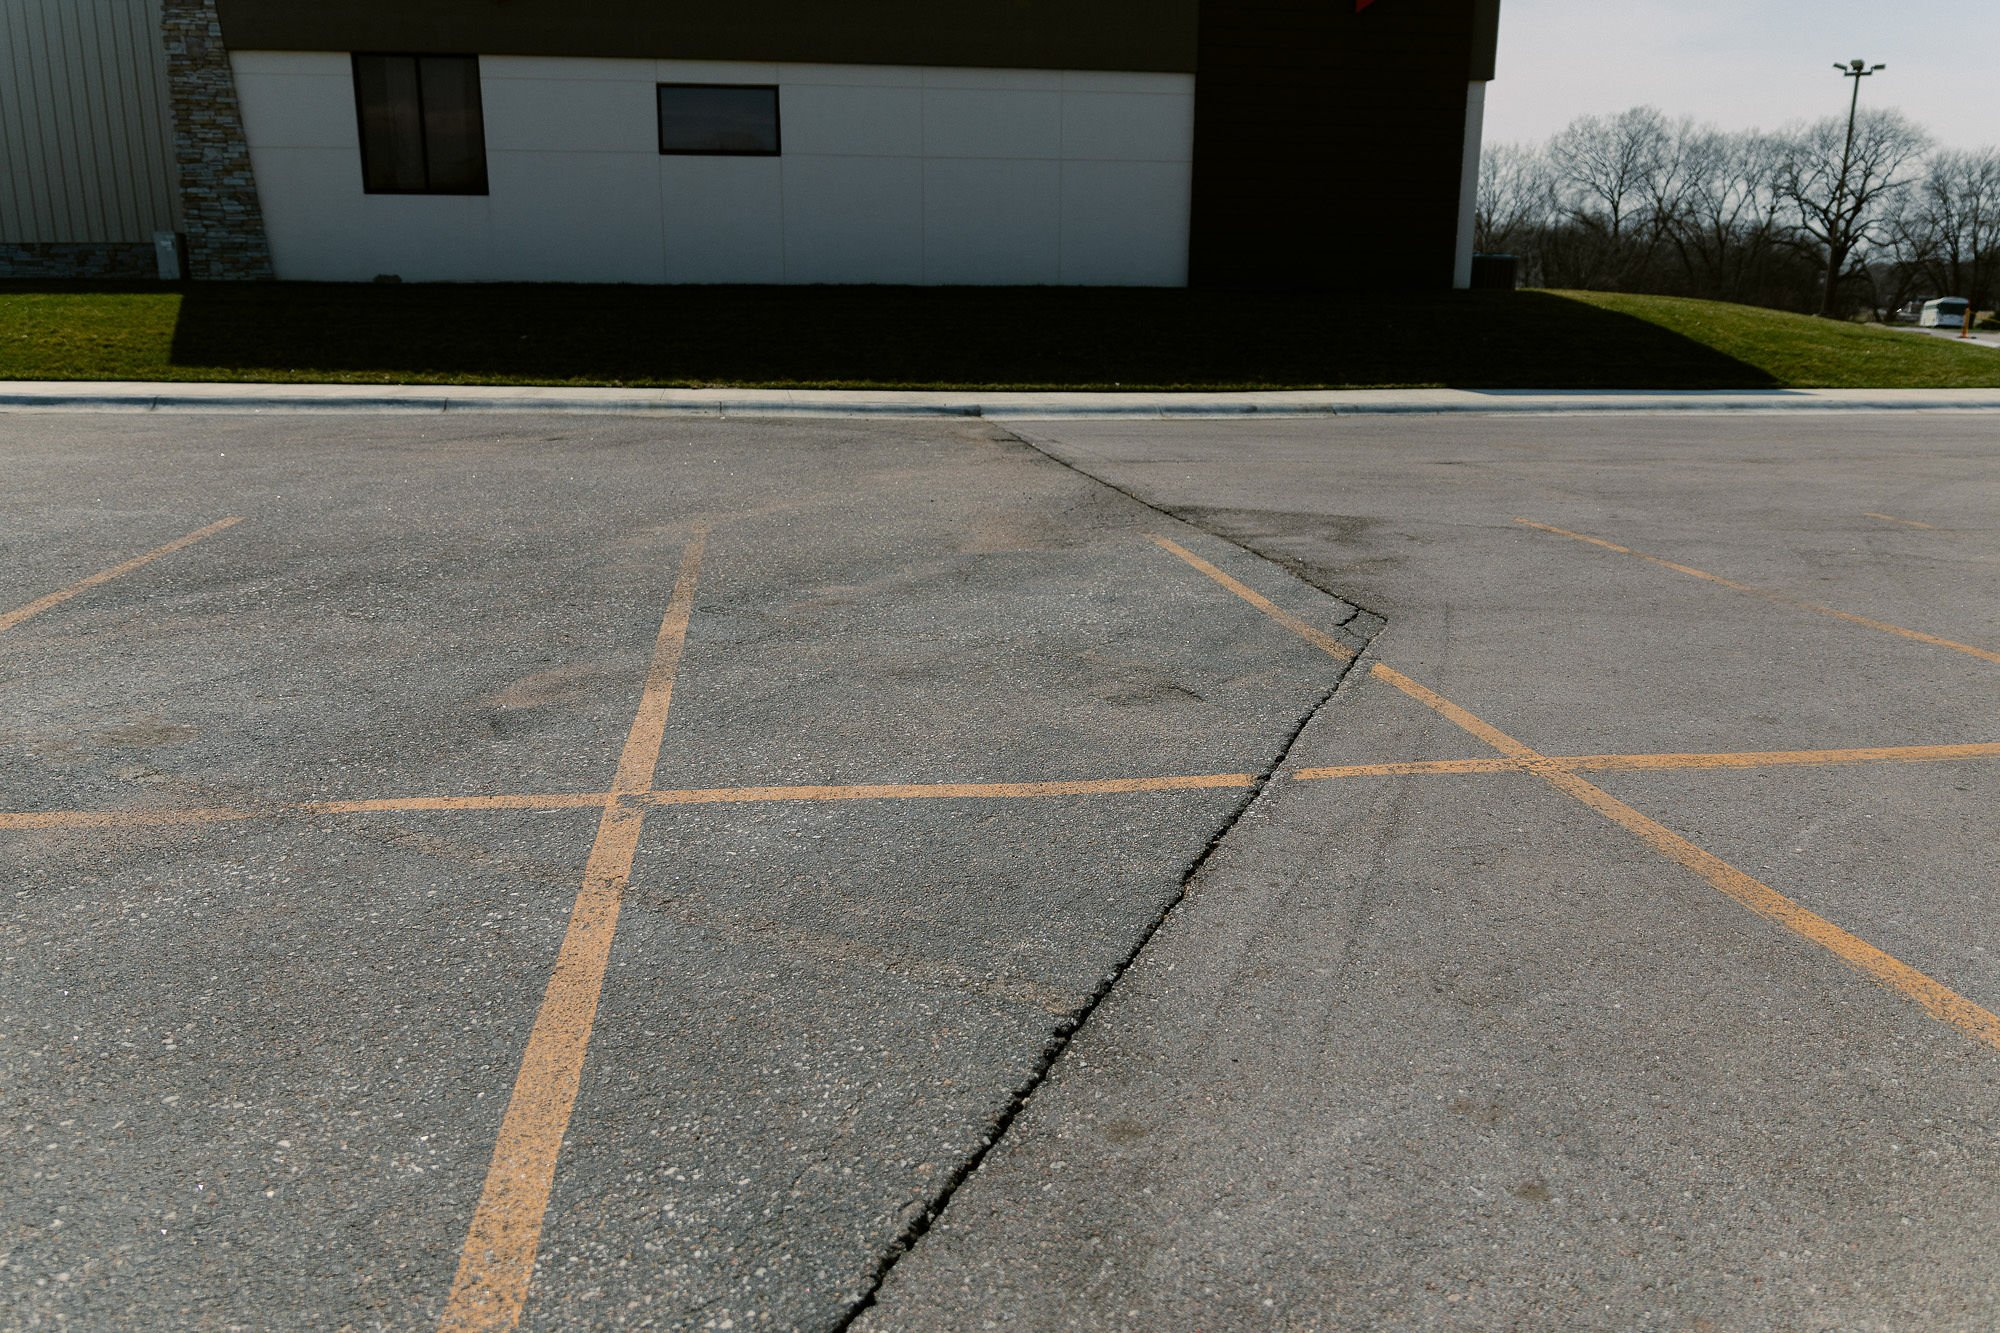 Lincoln Paving and Asphalt Repair apms 1110 - APMS Lincoln Paving Services